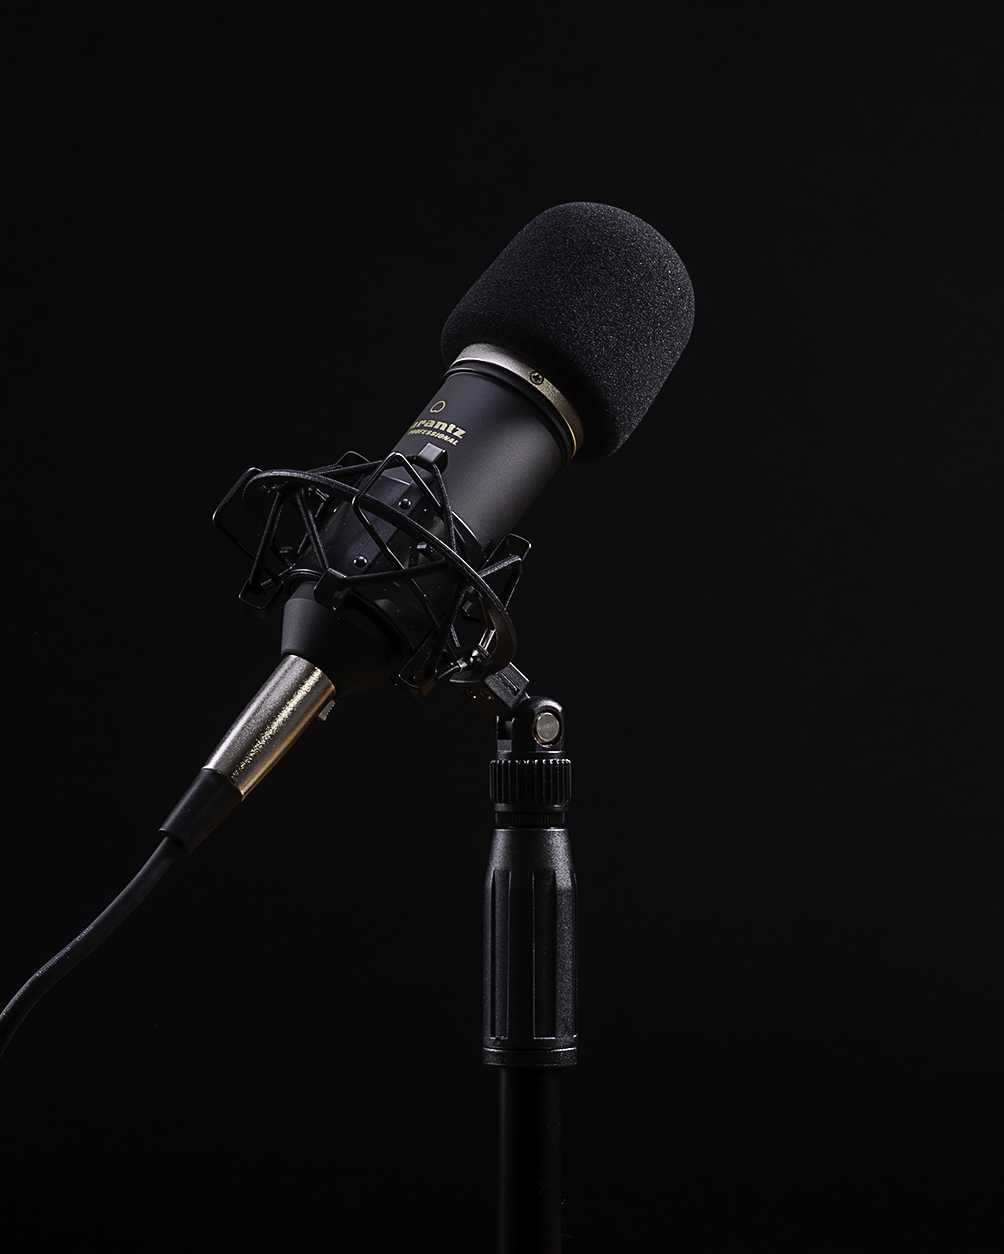 mics and table instagram.jpg